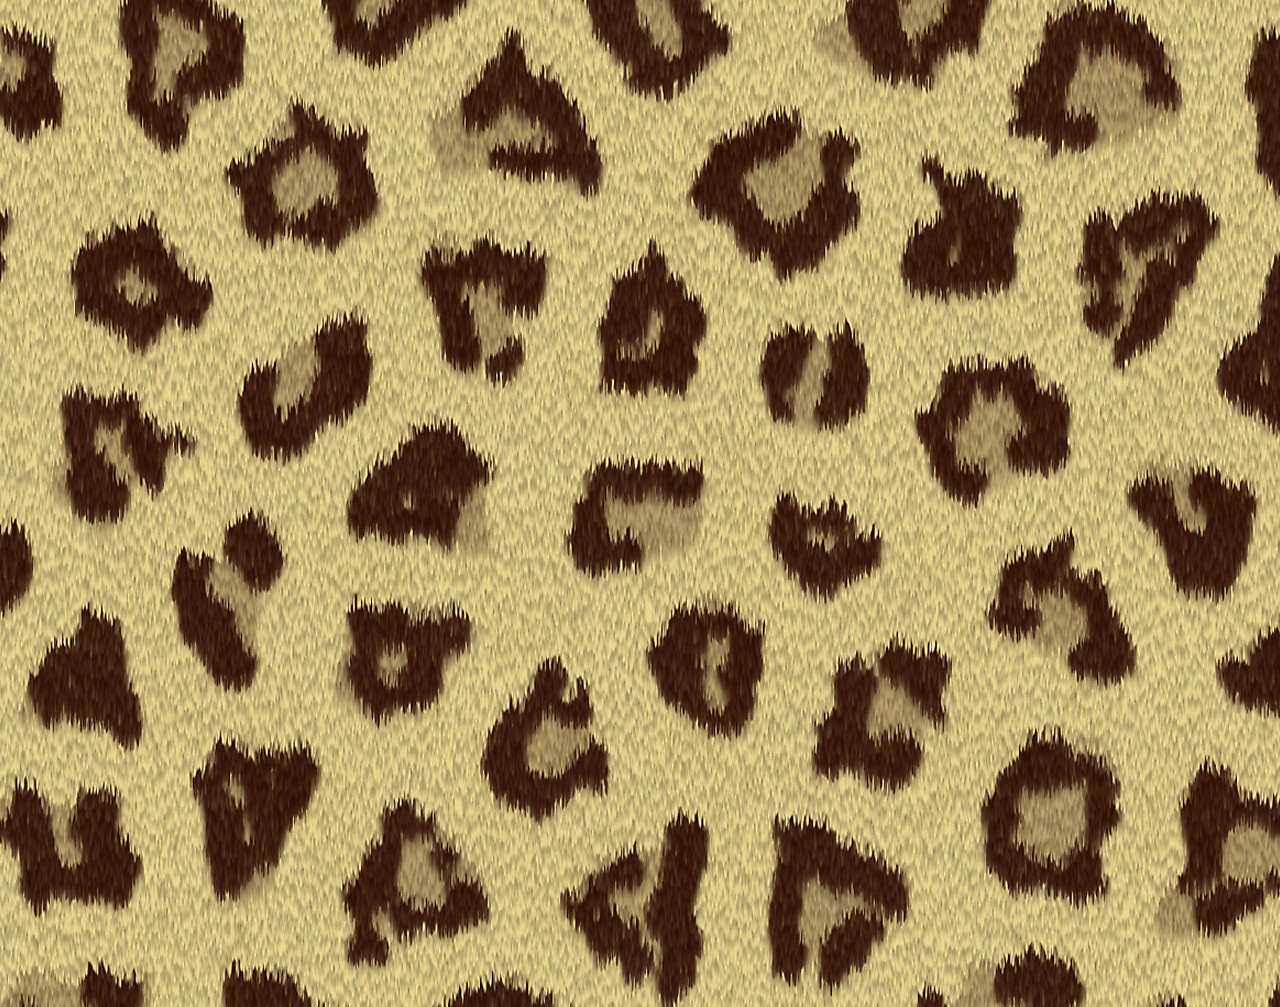 Jaguar Fur Backgrounds